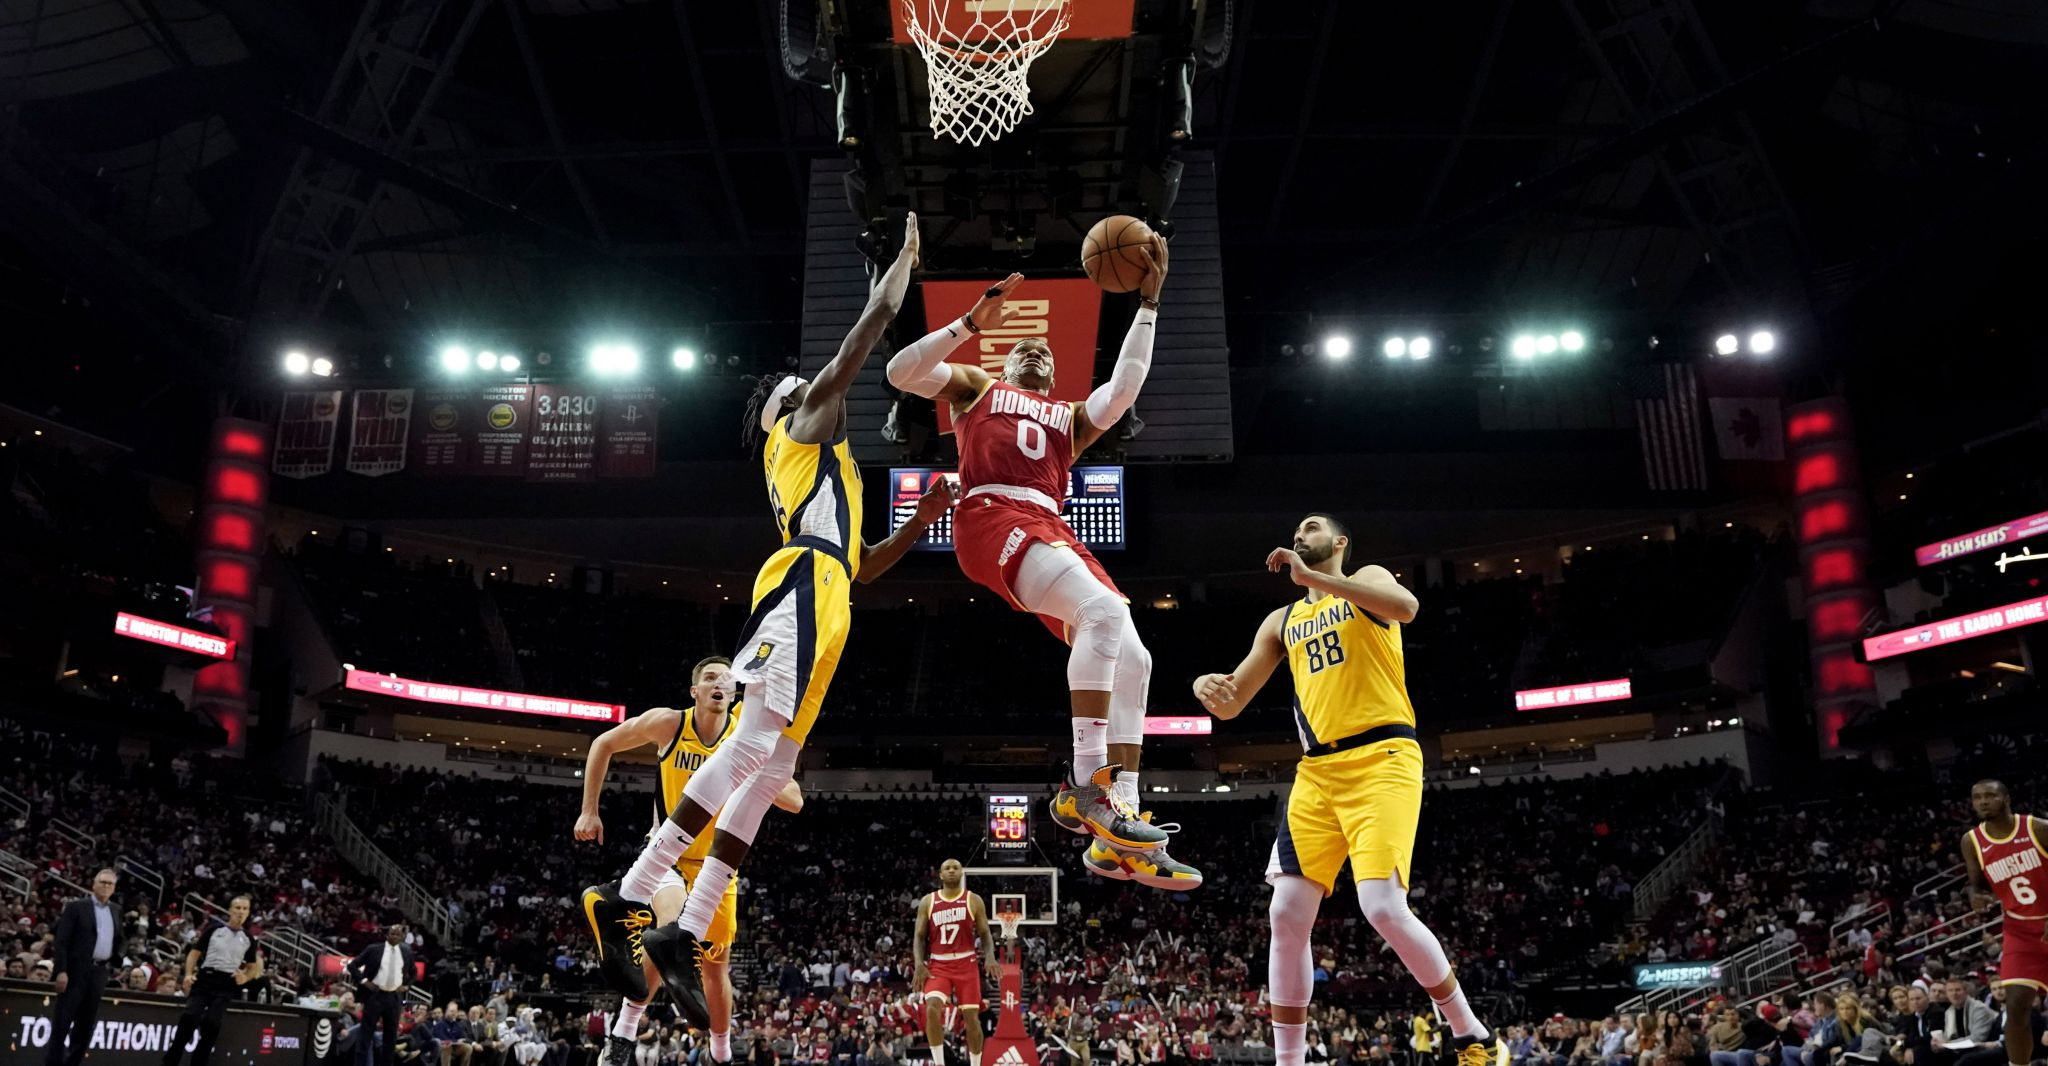 Rockets knock down Pacers, extend streak to 6 games